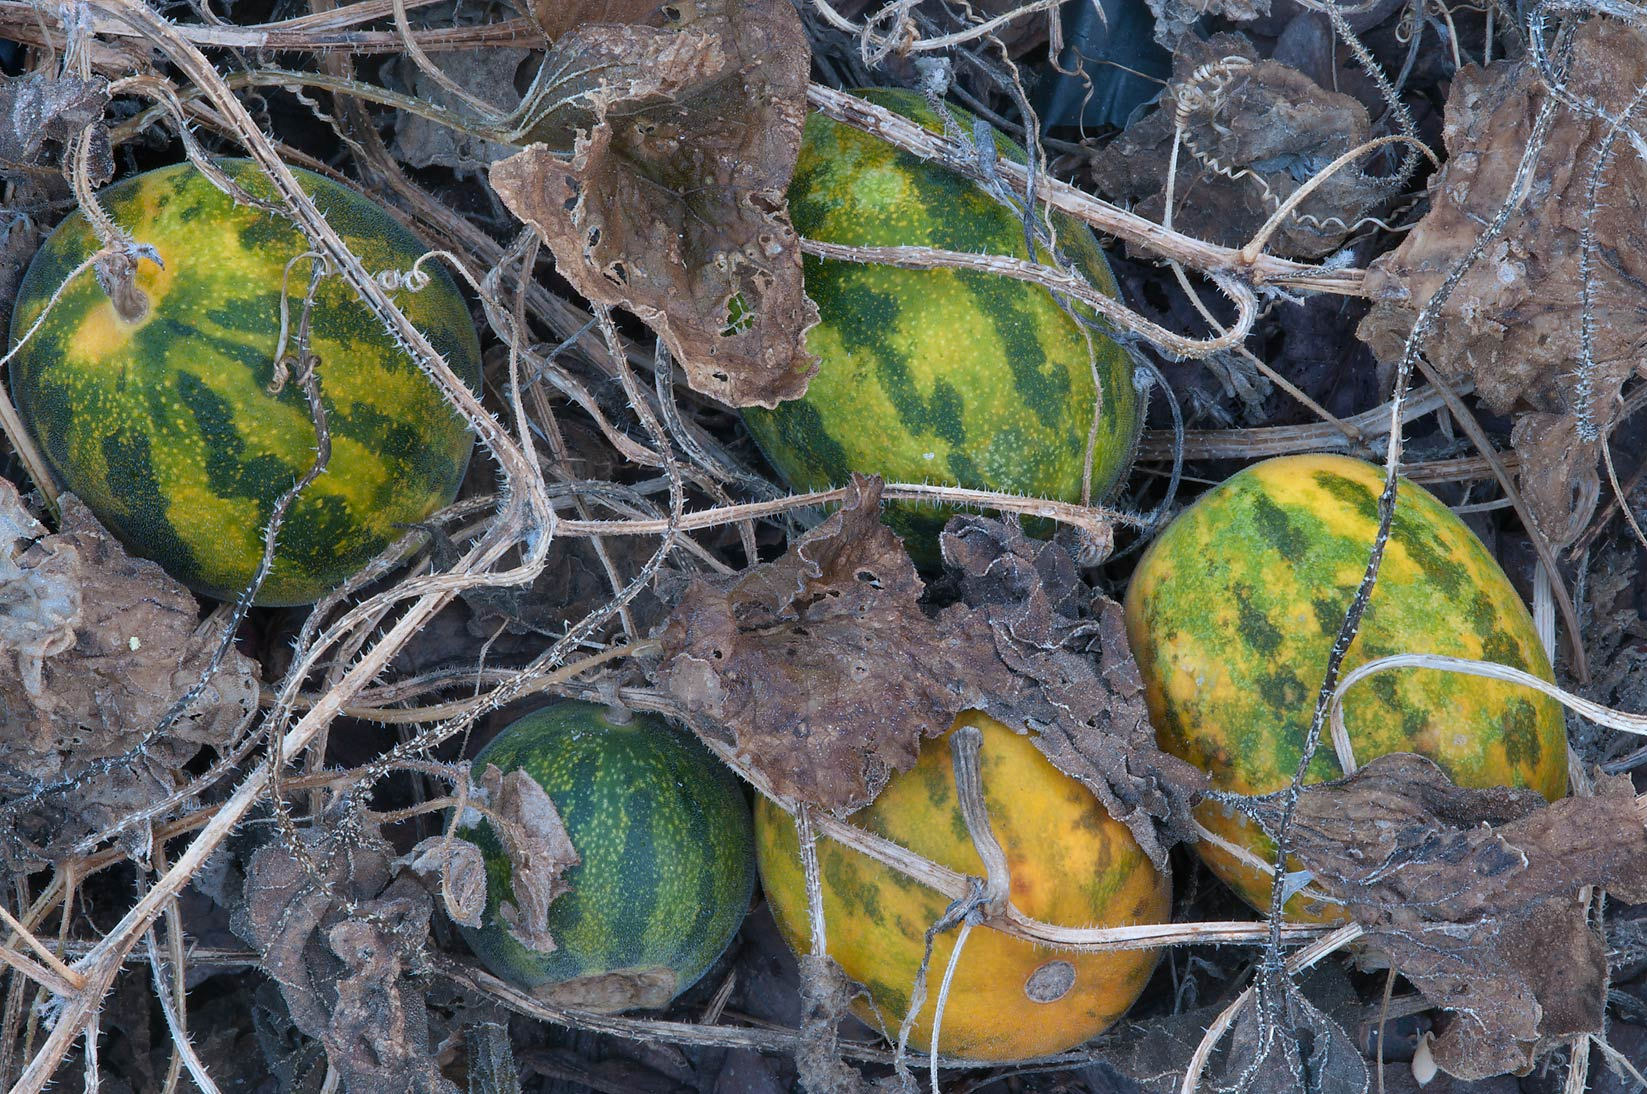 Frozen wild muskmelon (Cucumis melo, Dudaim melon...M University. College Station, Texas